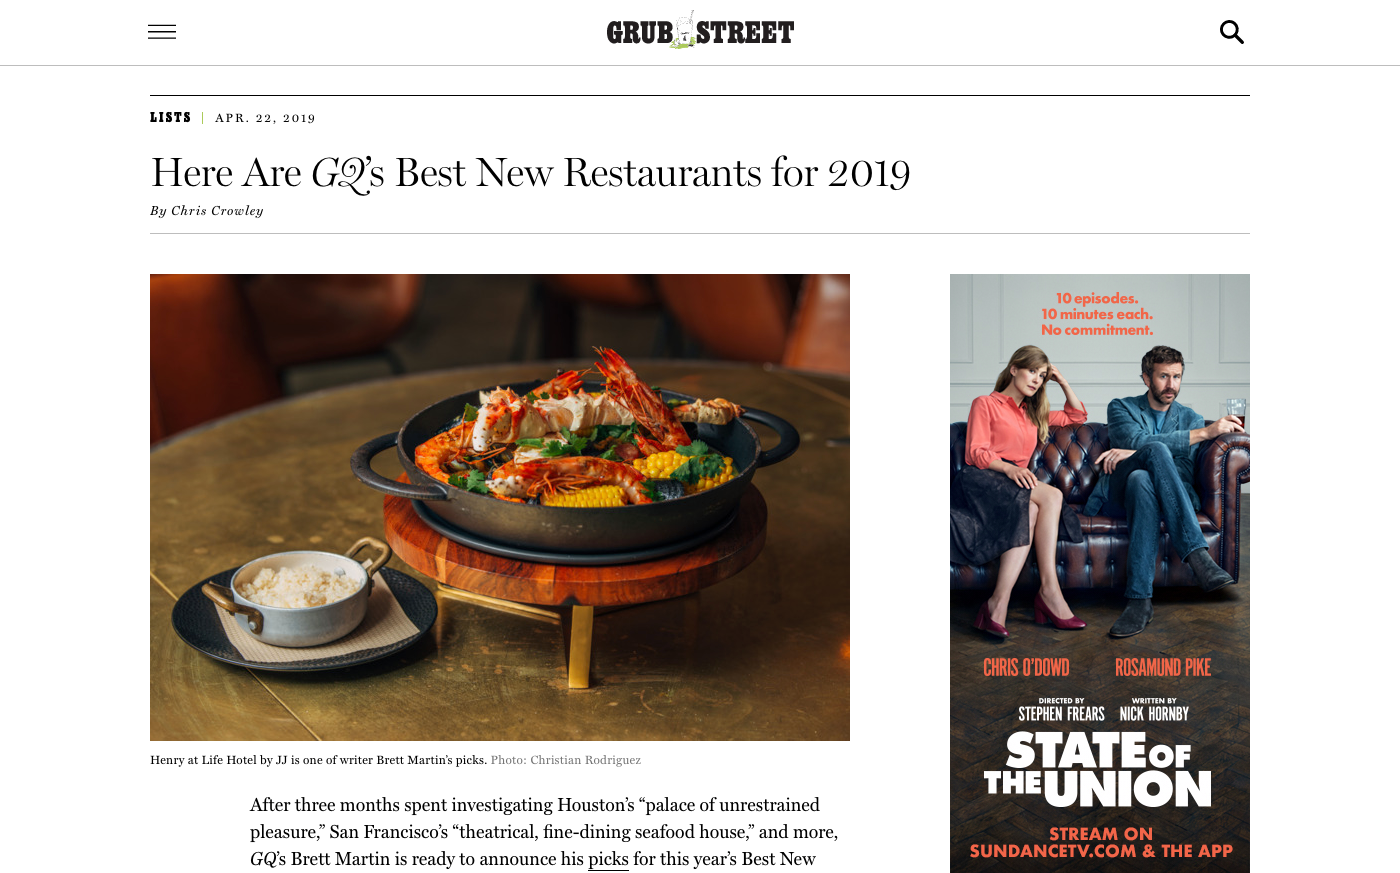 Here Are GQ's Best New Restaurants for 2019